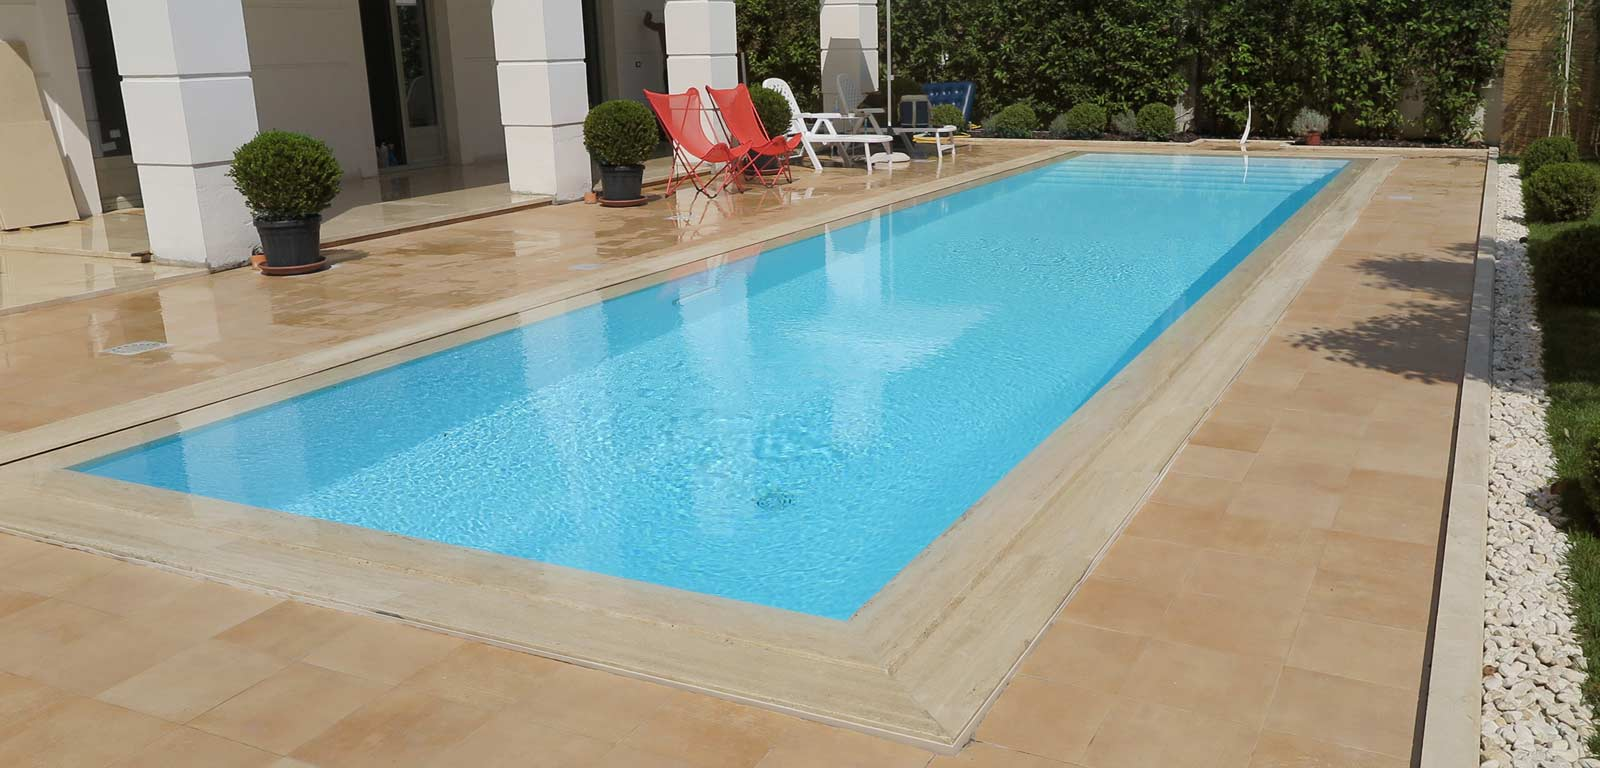 Elegant una piscina per lo sport in famiglia with immagini for Big blu piscine